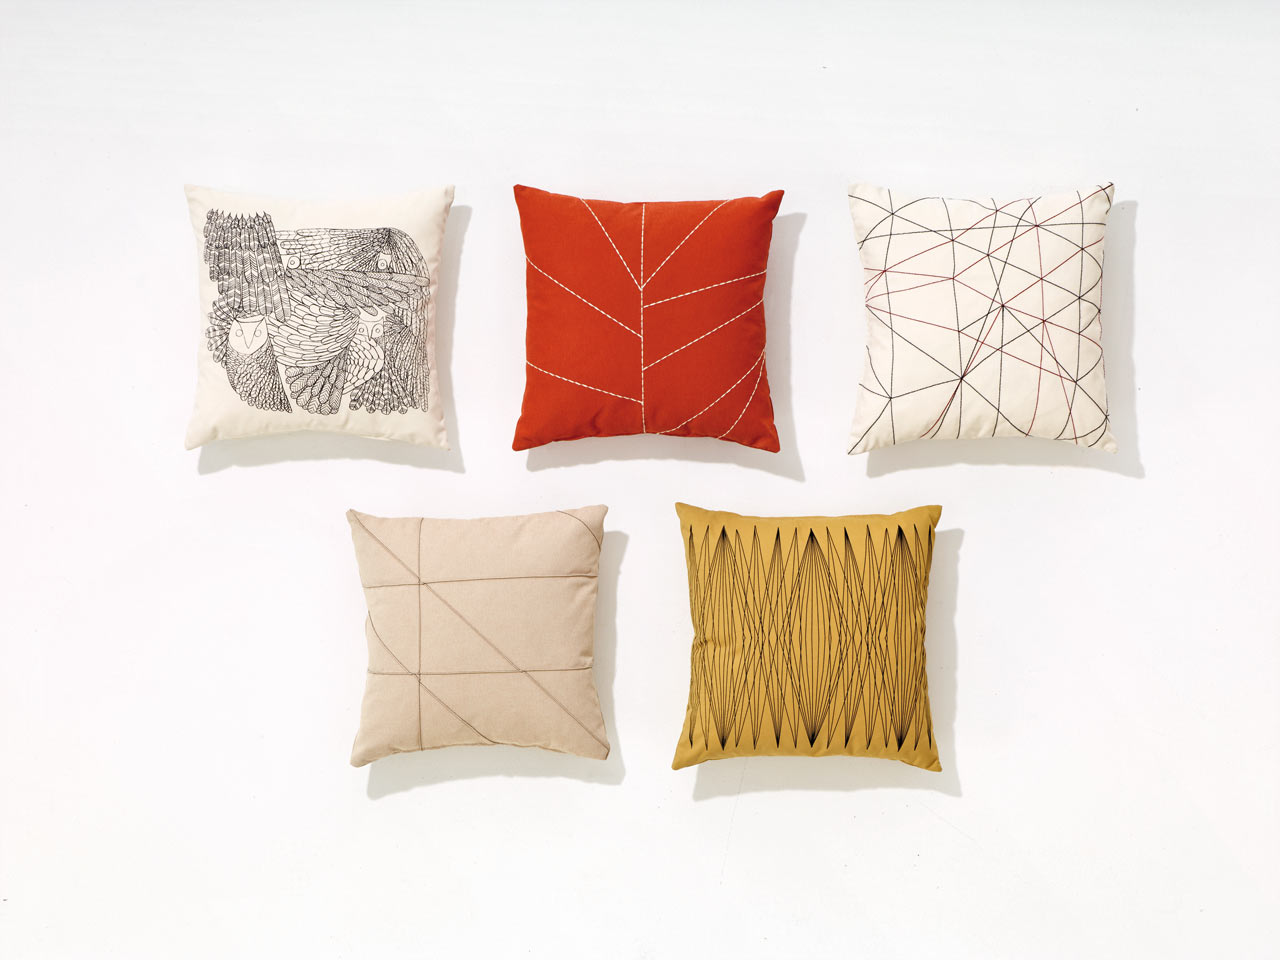 Cuscini cushions by Lievore Altherr Molina